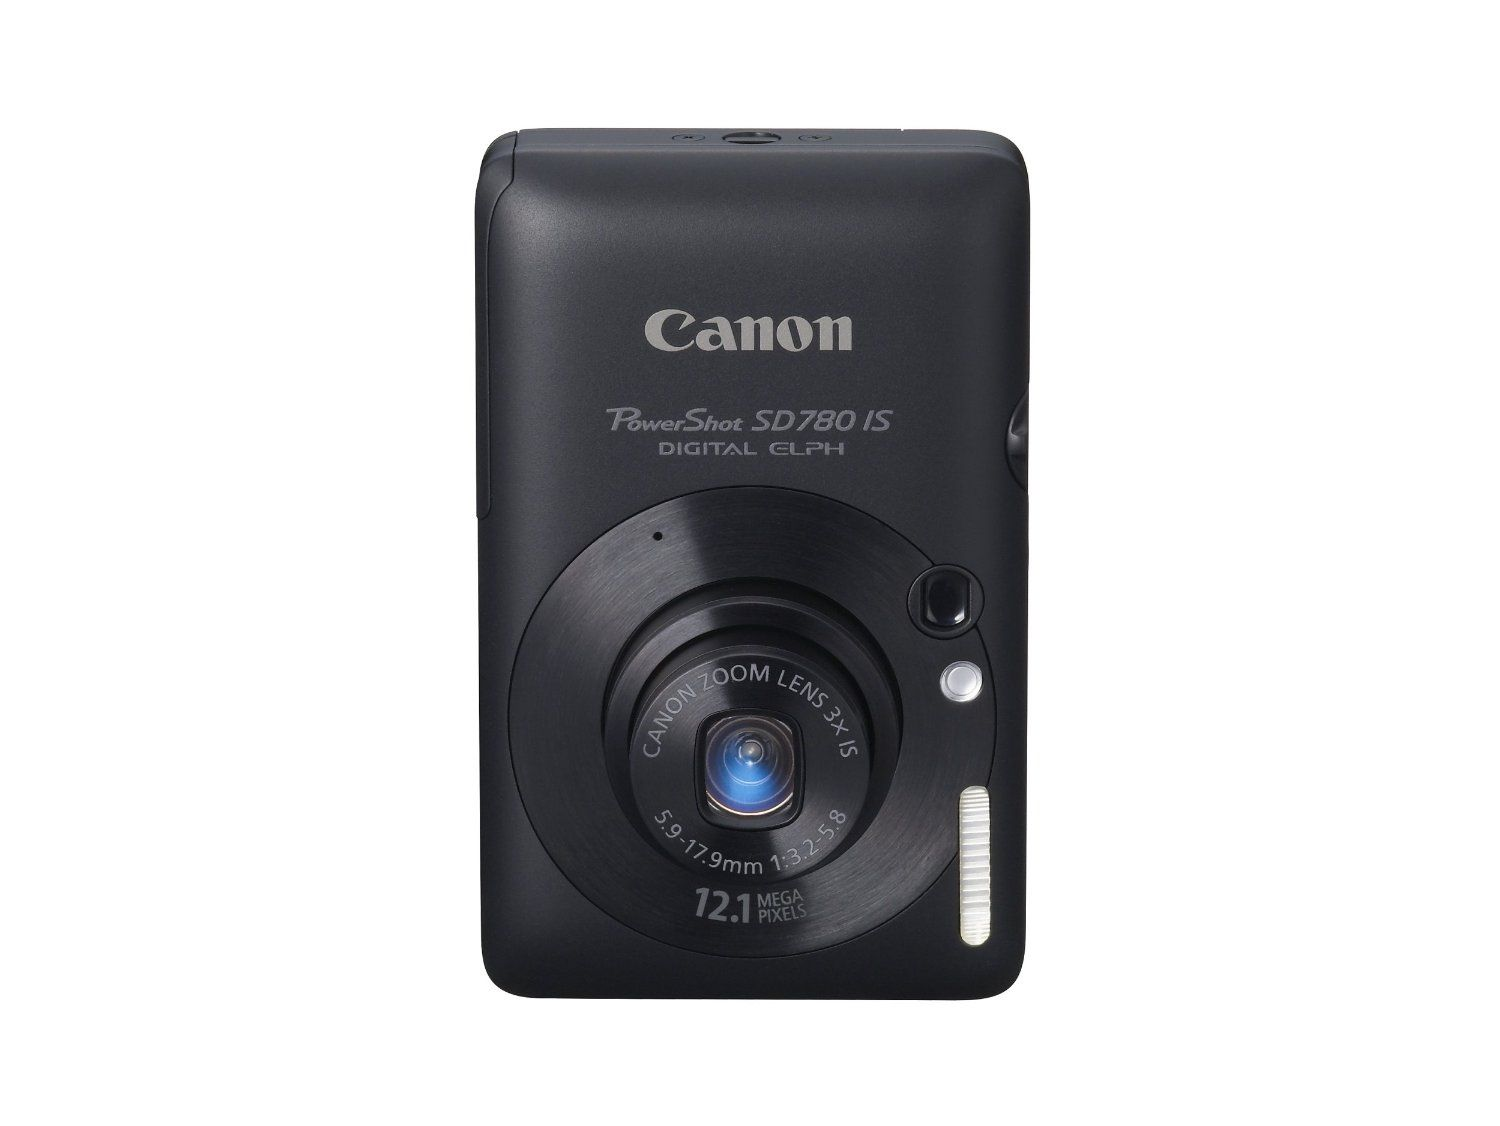 Canon Powershot Sd780is 12 1 Mp Digital Camera With 3x Optical Image Stabilized Zoom And 2 5 Inch Lcd Black Price Powershot Canon Powershot Optical Image